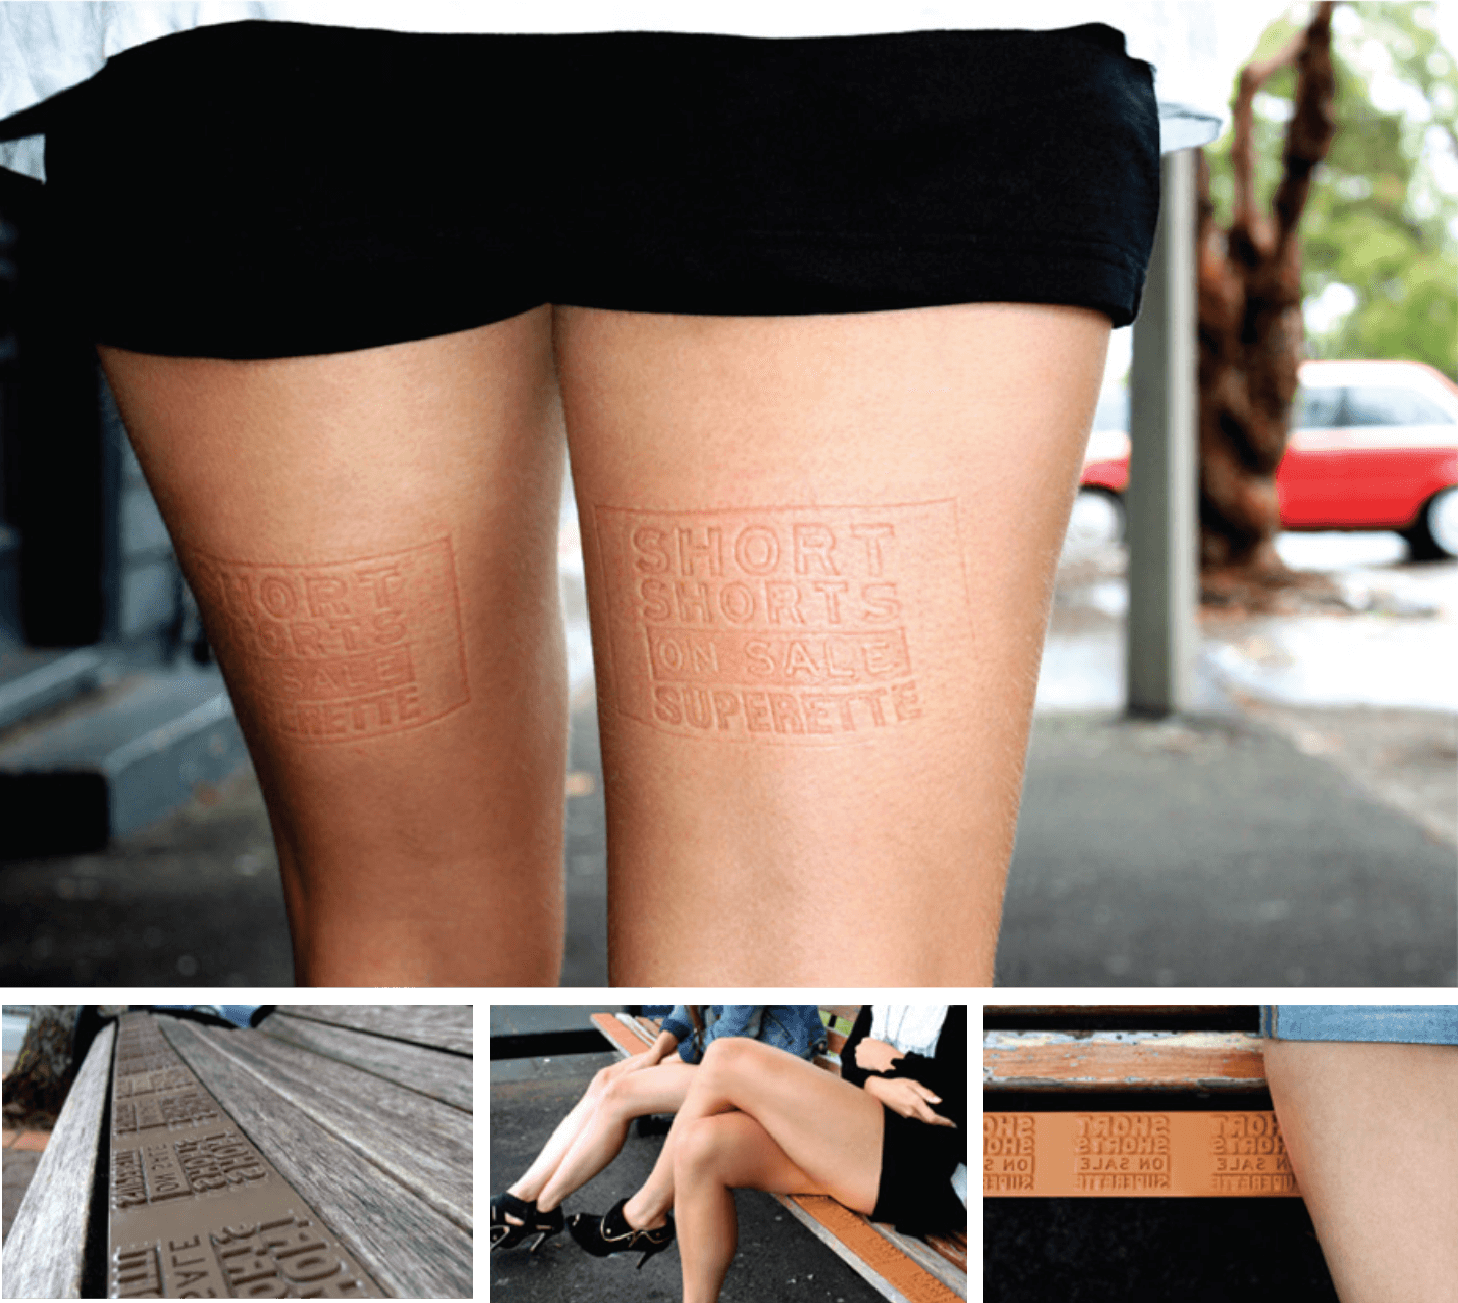 Short Shorts Leg Stamps - Superette